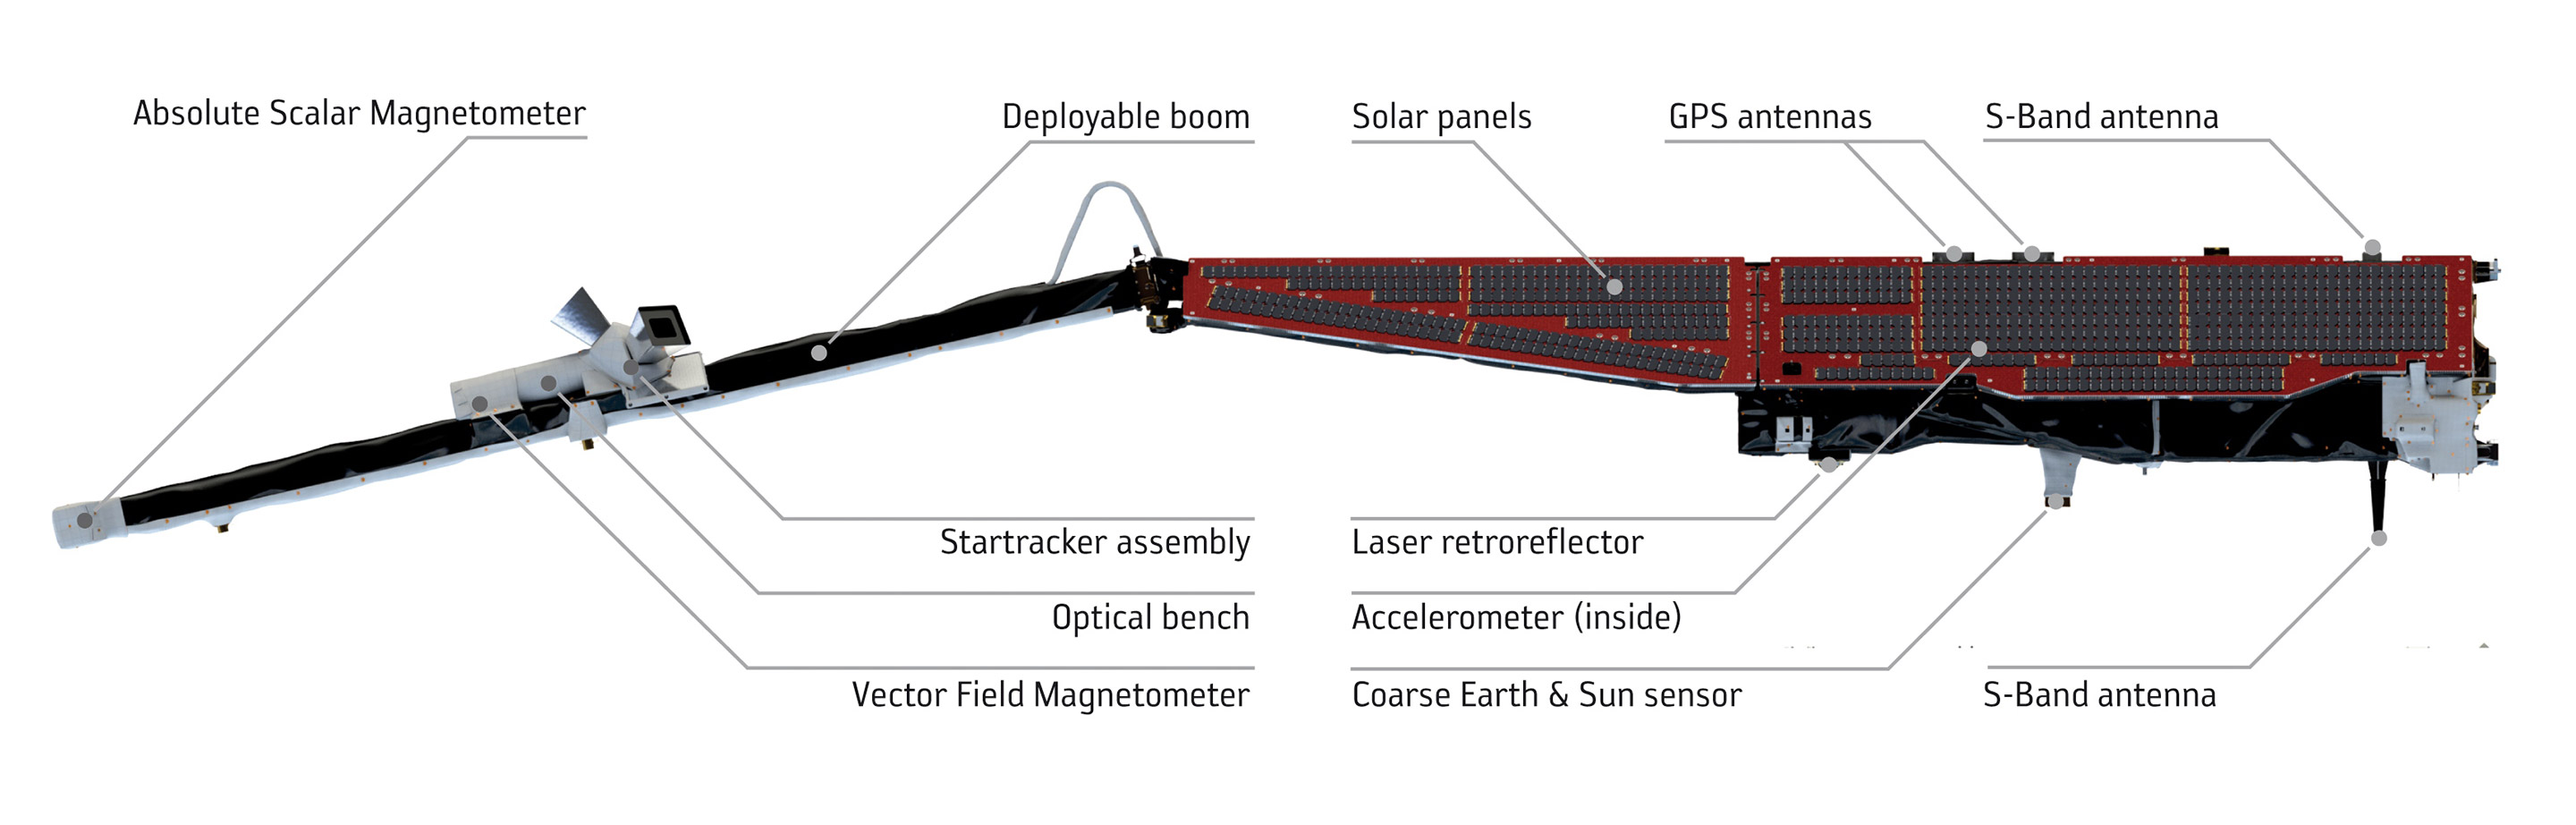 Annotated side view of the Swarm spacecraft. Image: ESA/AOES Medialab